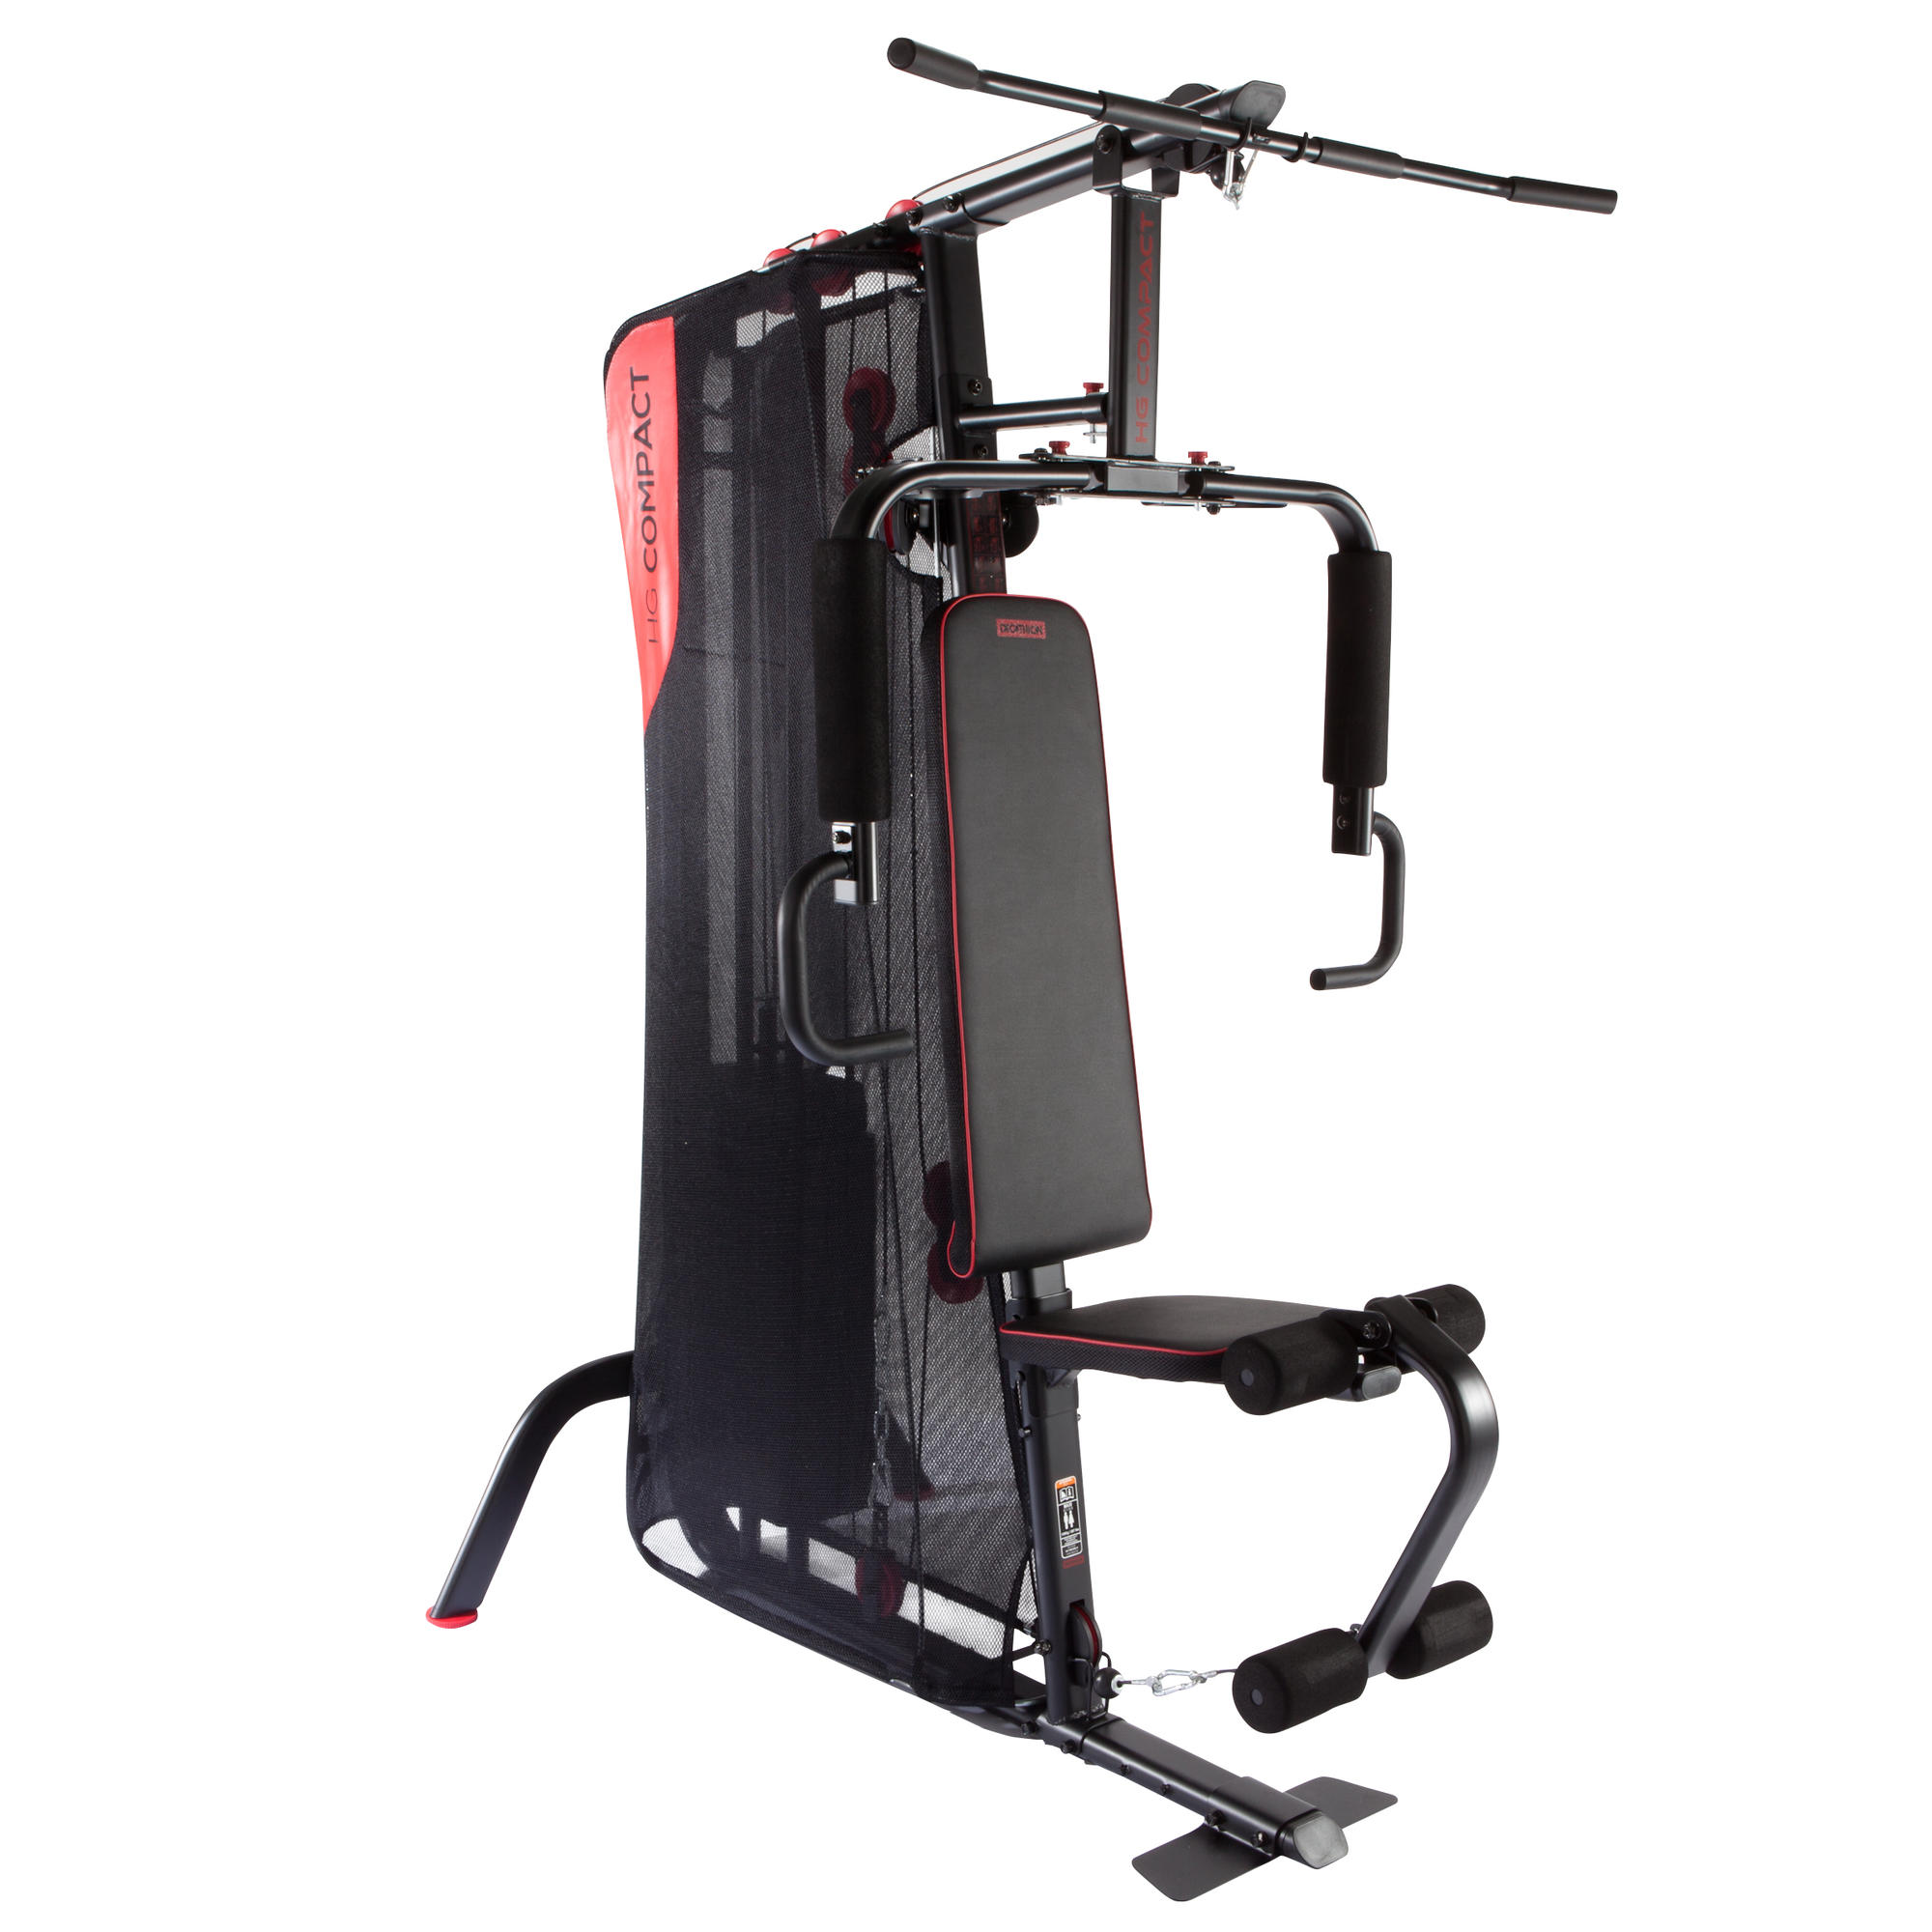 Appareil A Charge Guidee Home Gym Compact Musculation Domyos By Decathlon